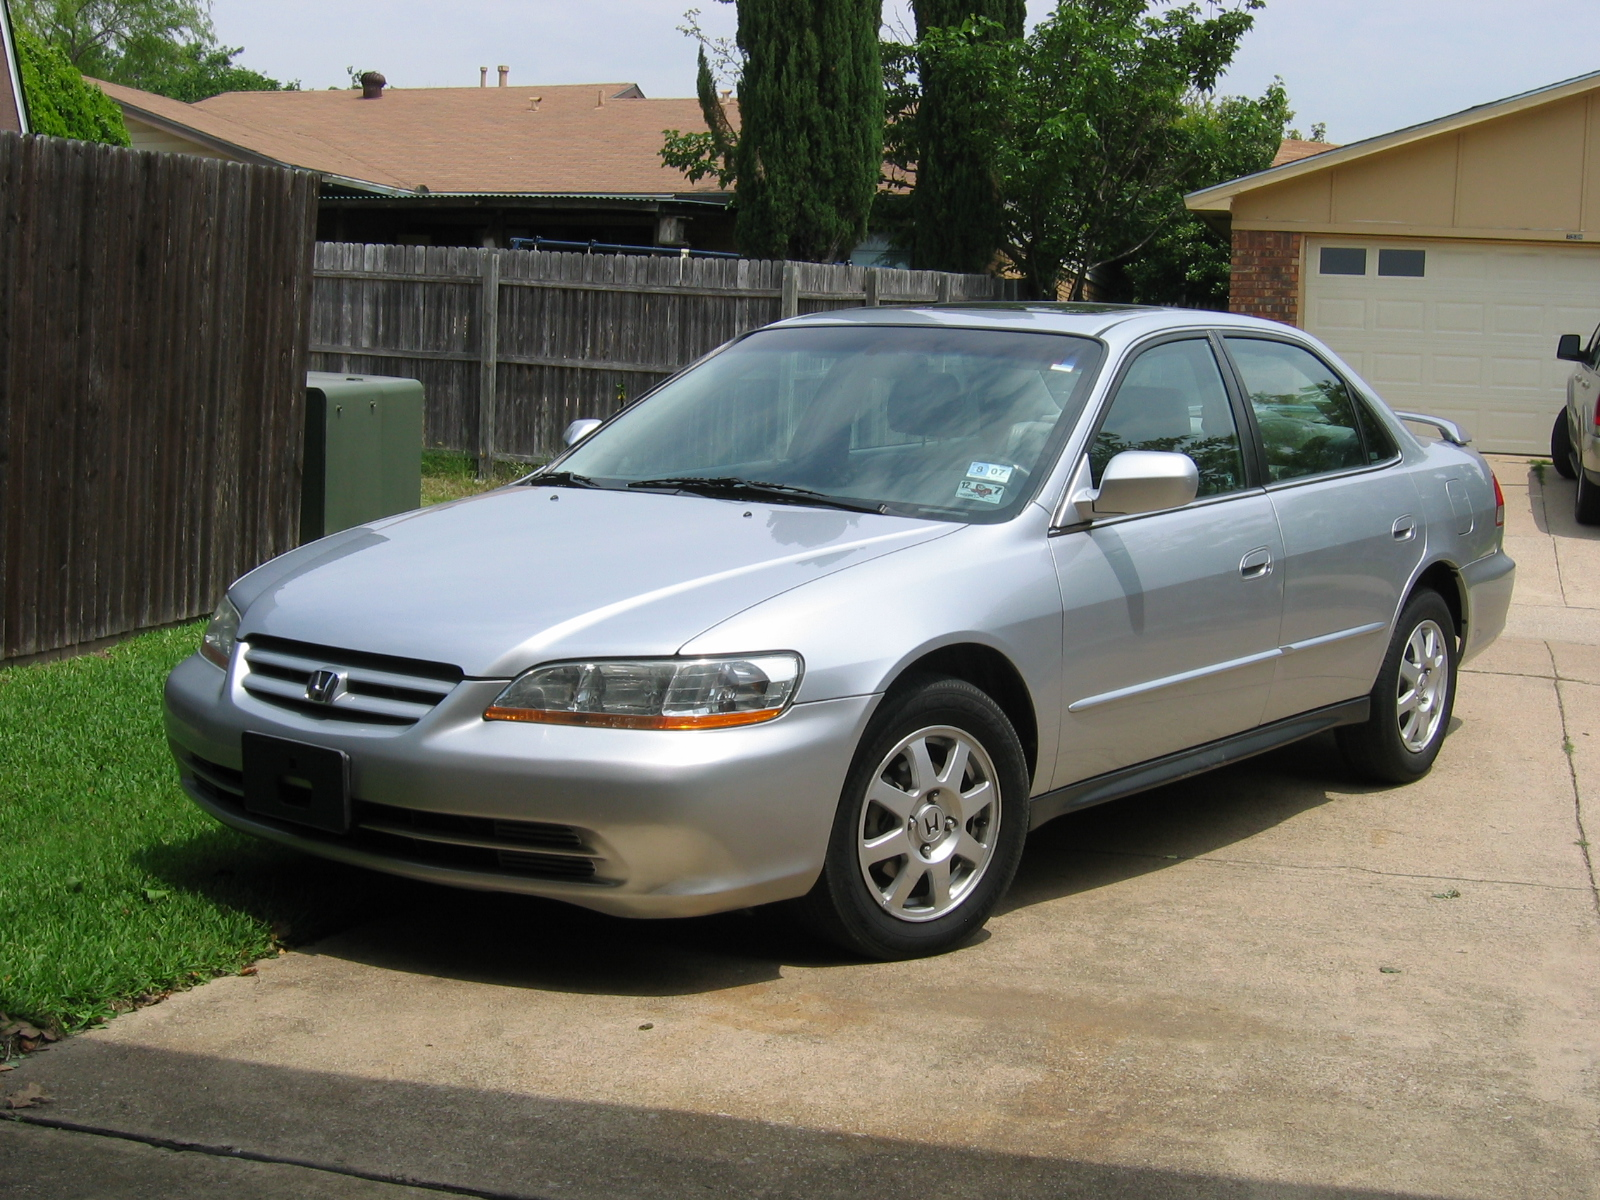 2002 Honda Accord 2 0 Se Related Infomation Specifications